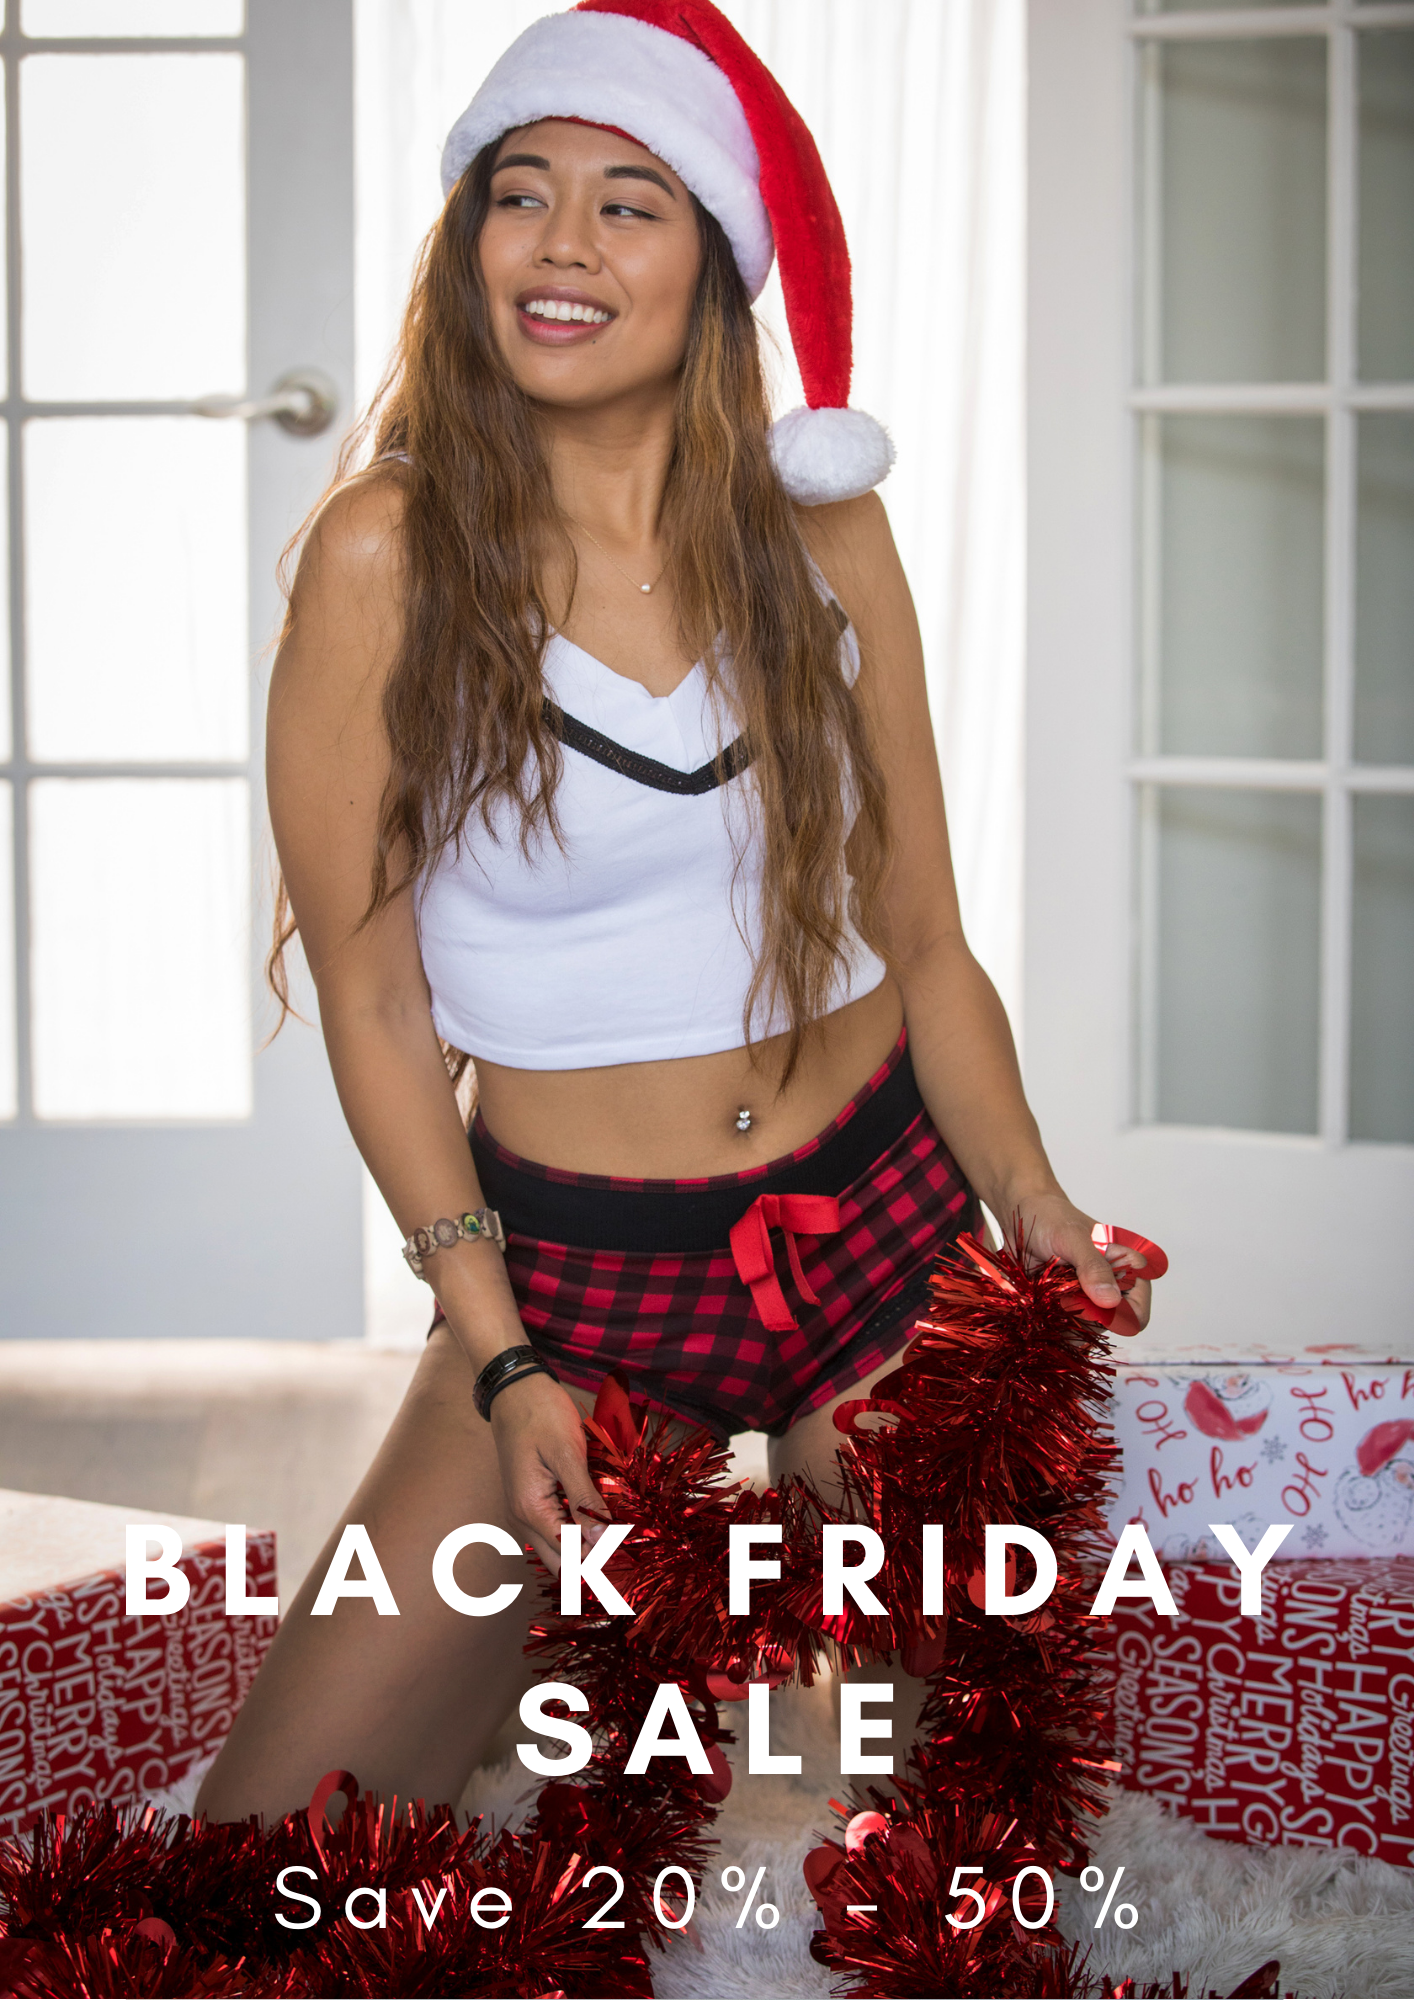 sale, black Friday, black, friday, adult, lingerie, sale, chirstmas, holiday,